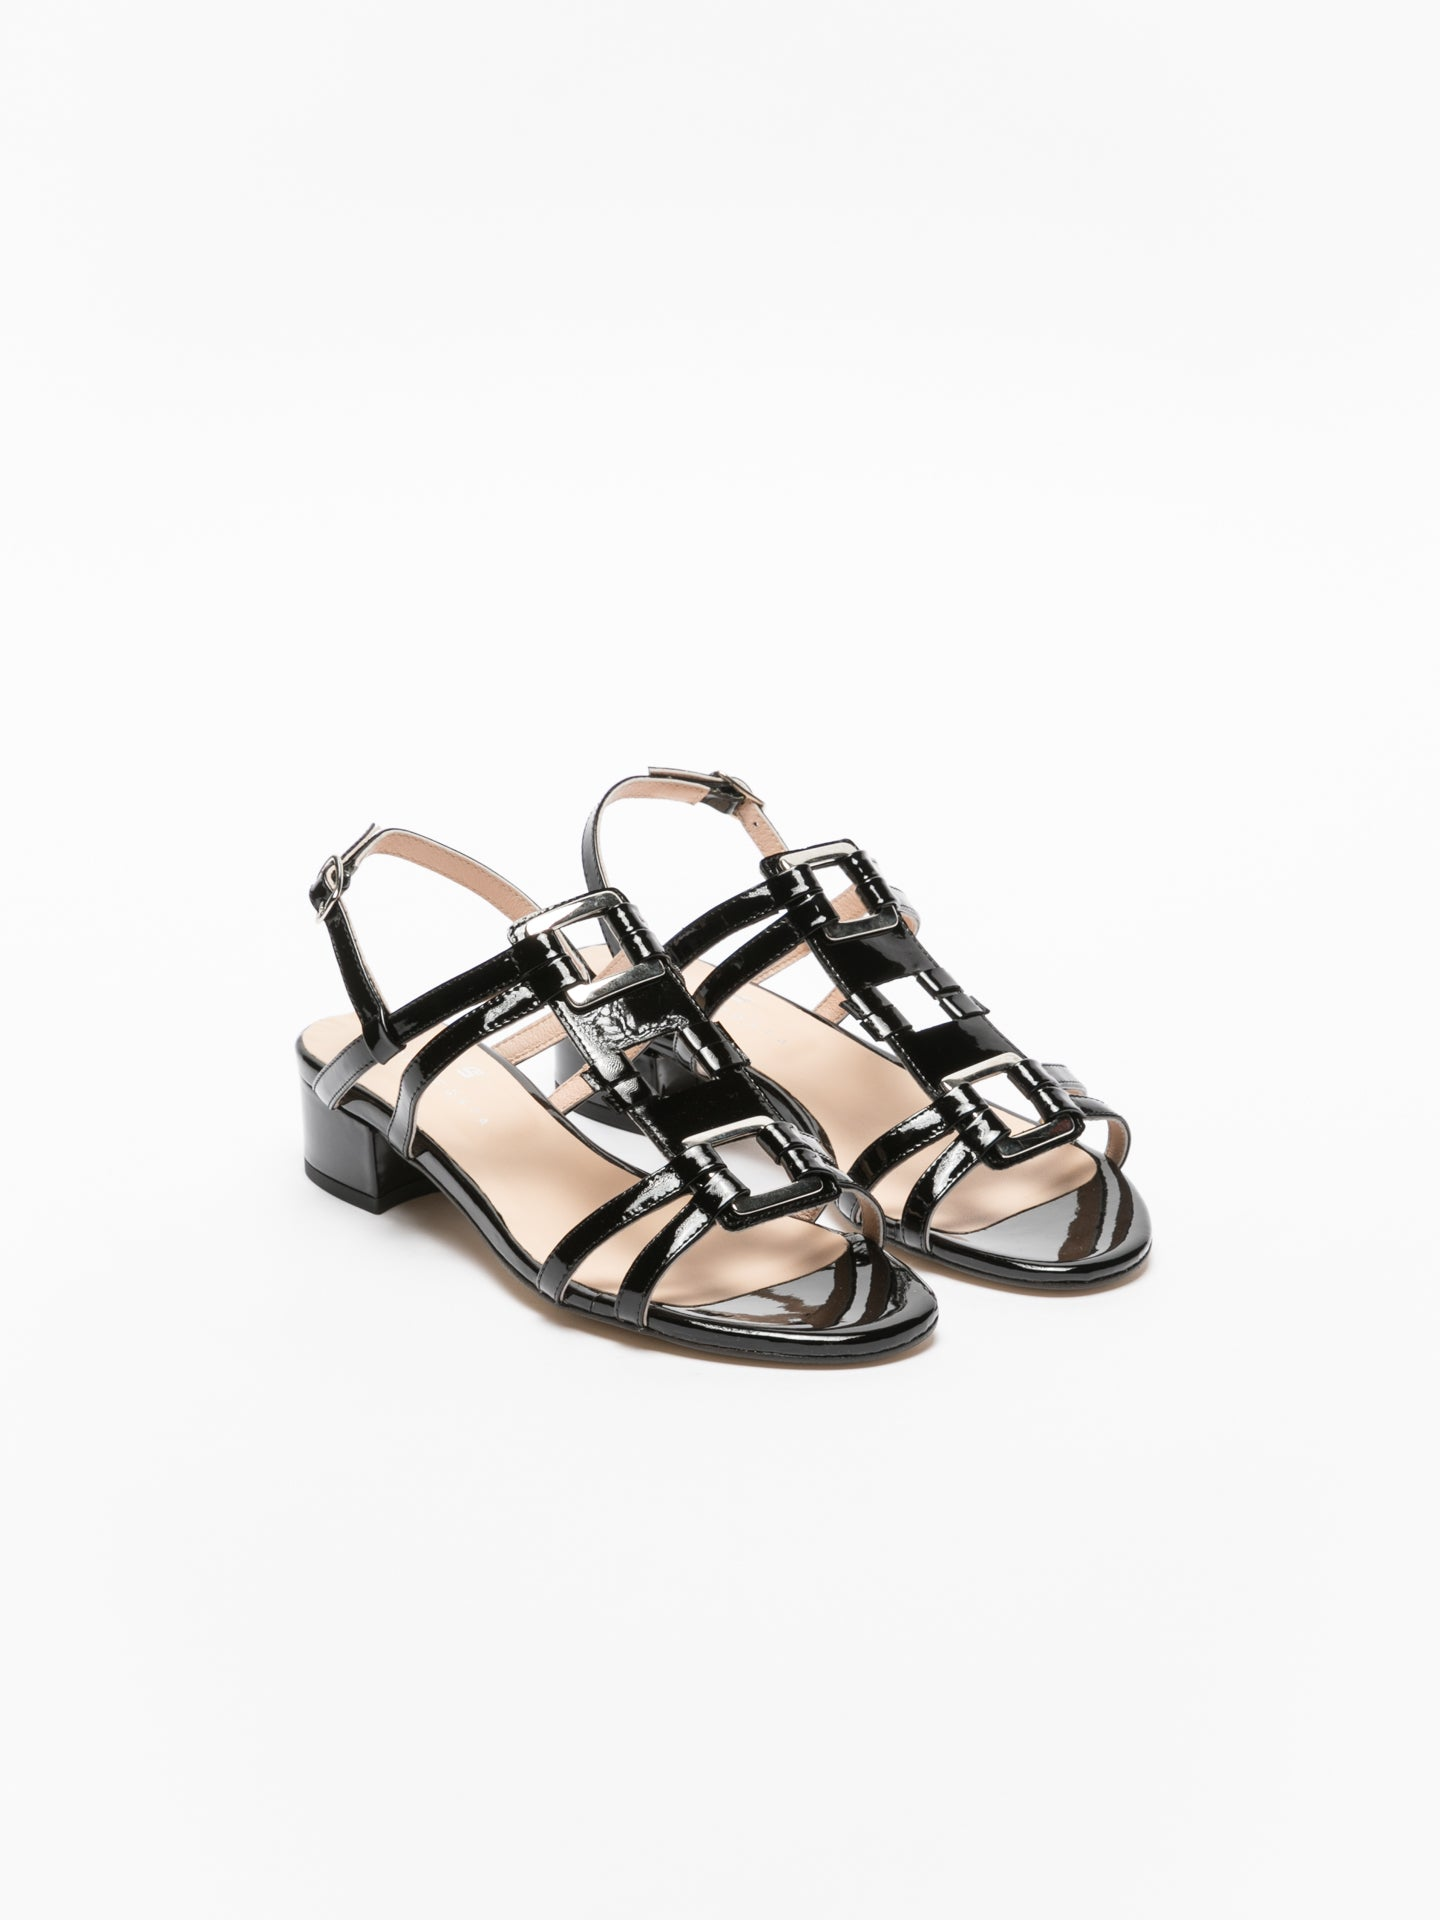 Sofia Costa Black Sling-Back Sandals